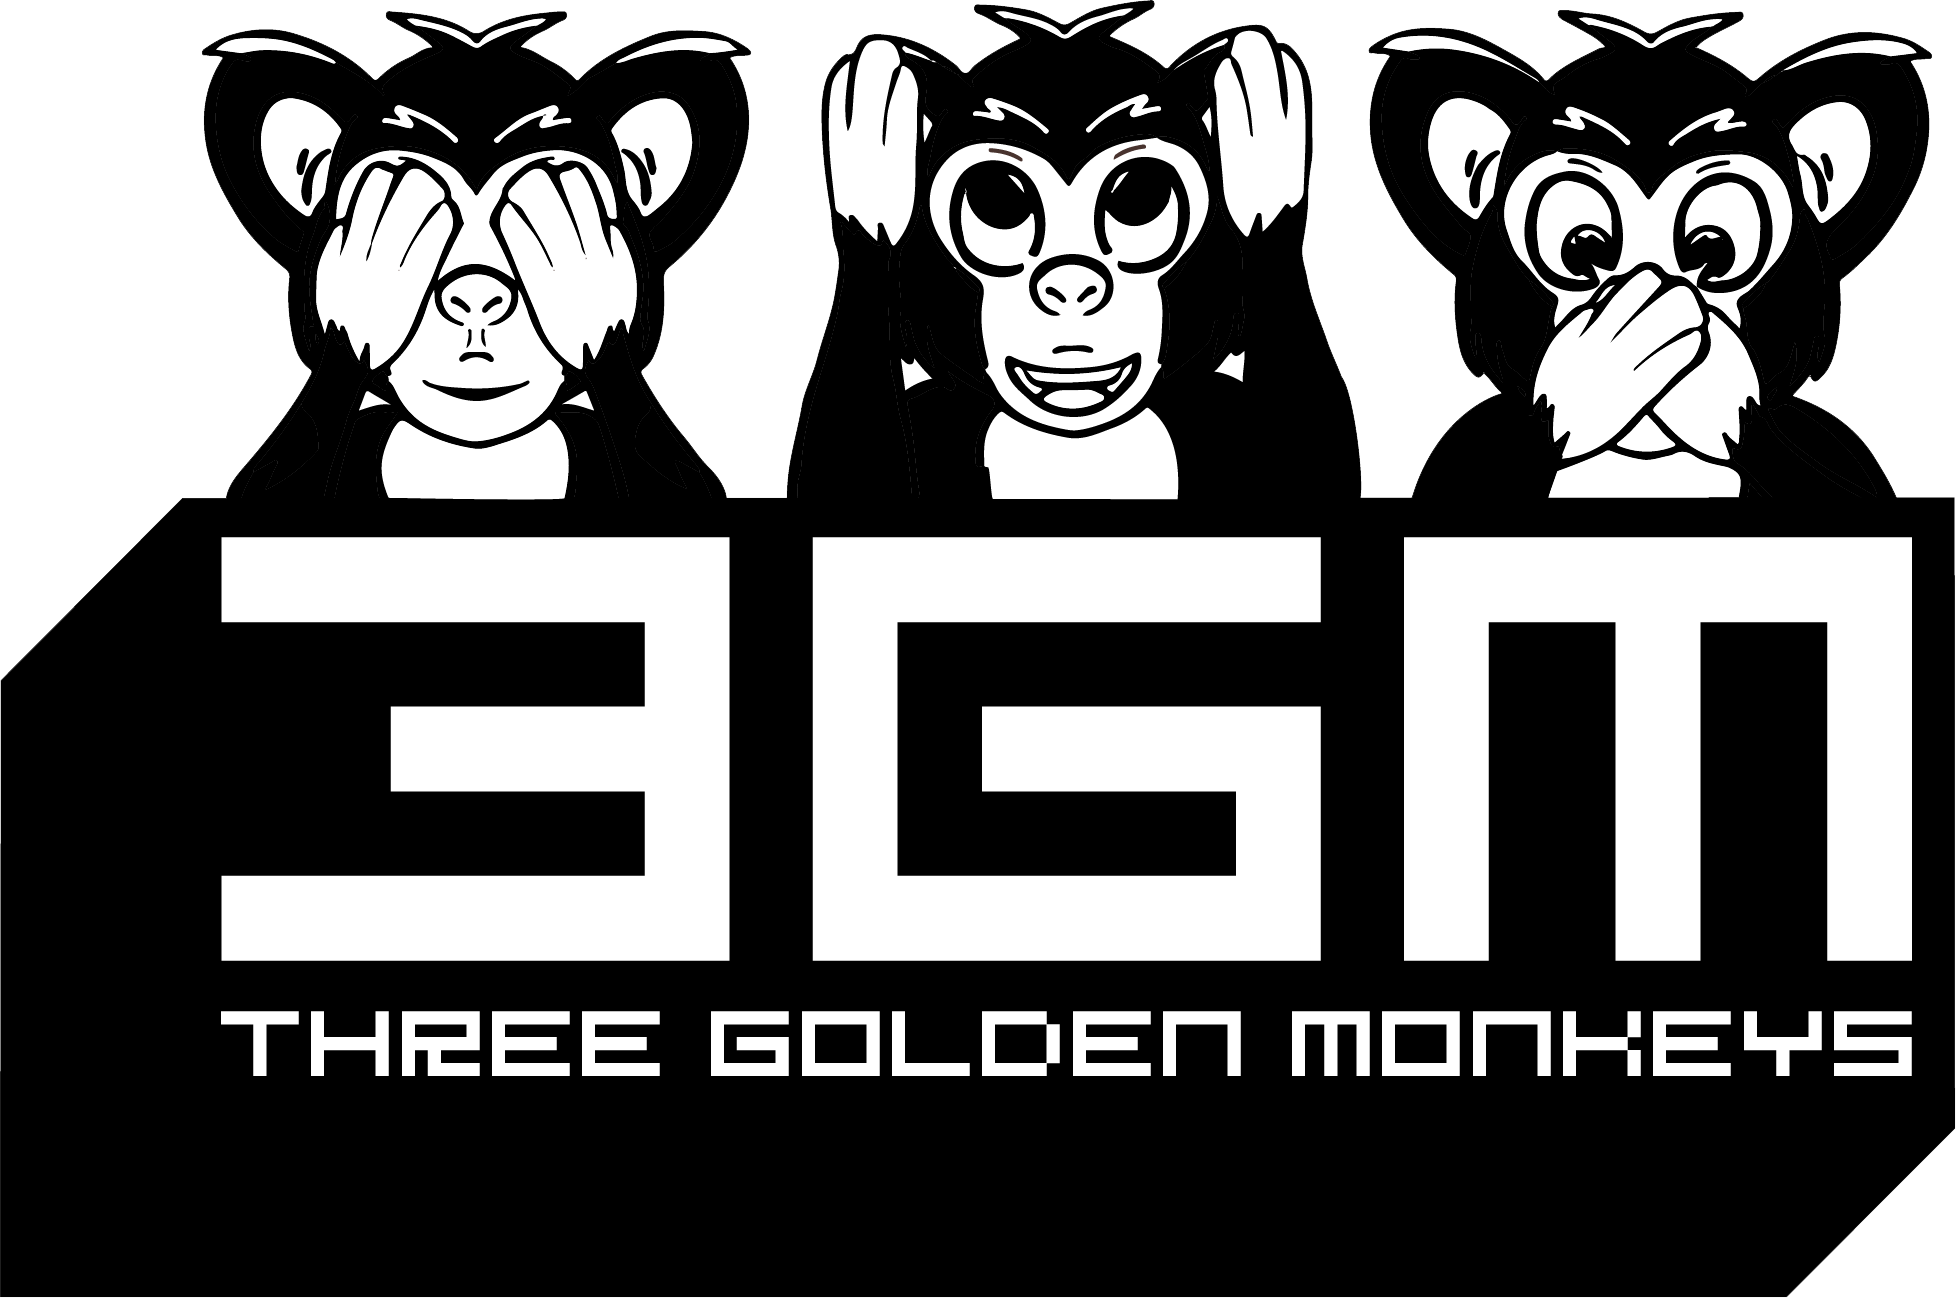 ASMR Archives - Three Golden Monkeys Lab